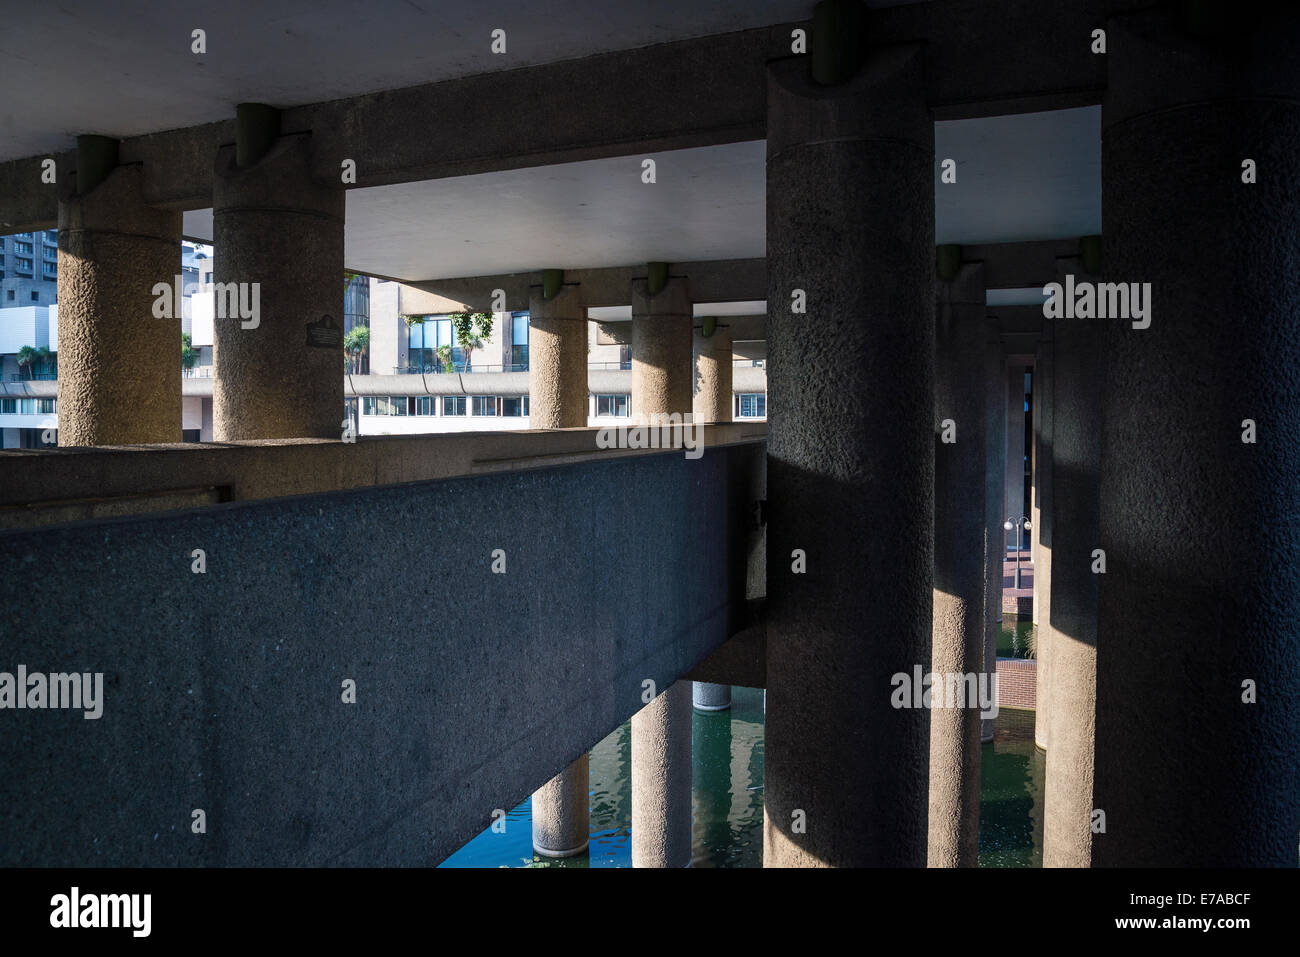 Passageway, Barbican residential estate, City of London, UK - Stock Image